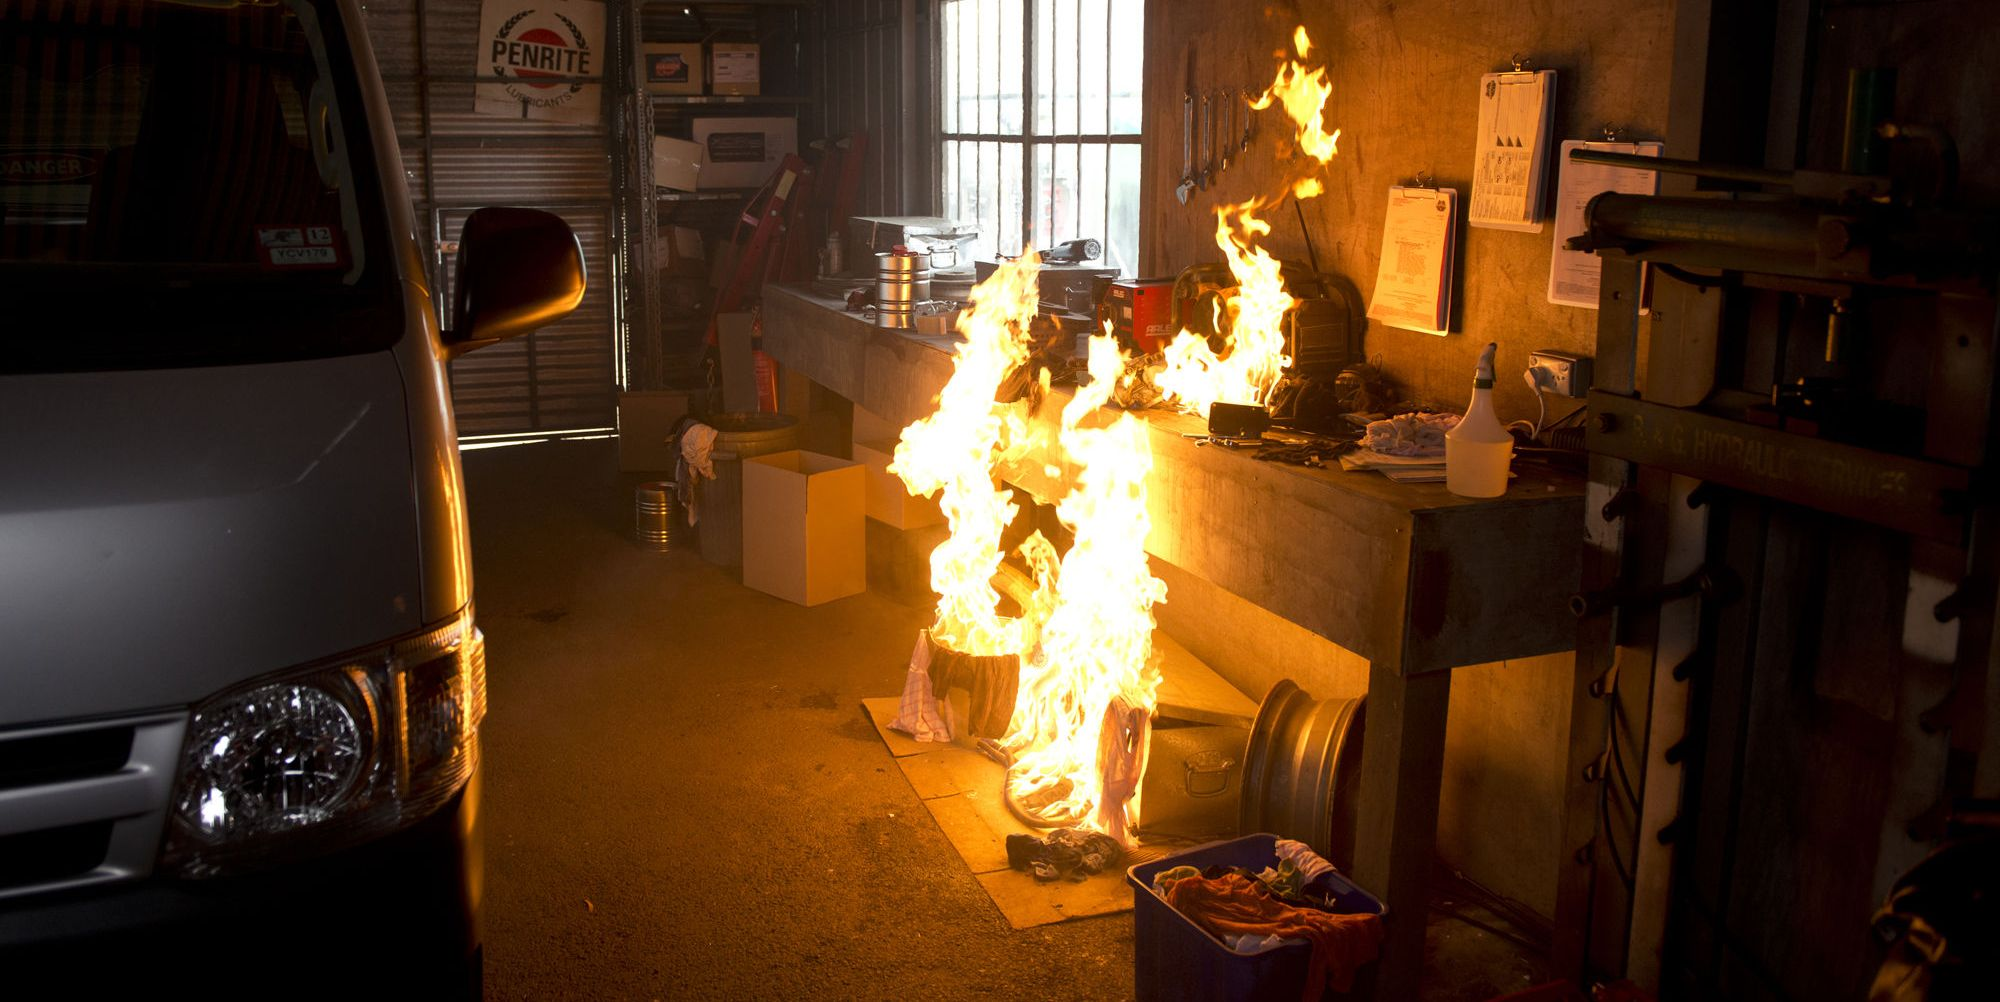 Bea Nilsson gets caught in a fire at the garage in Neighbours